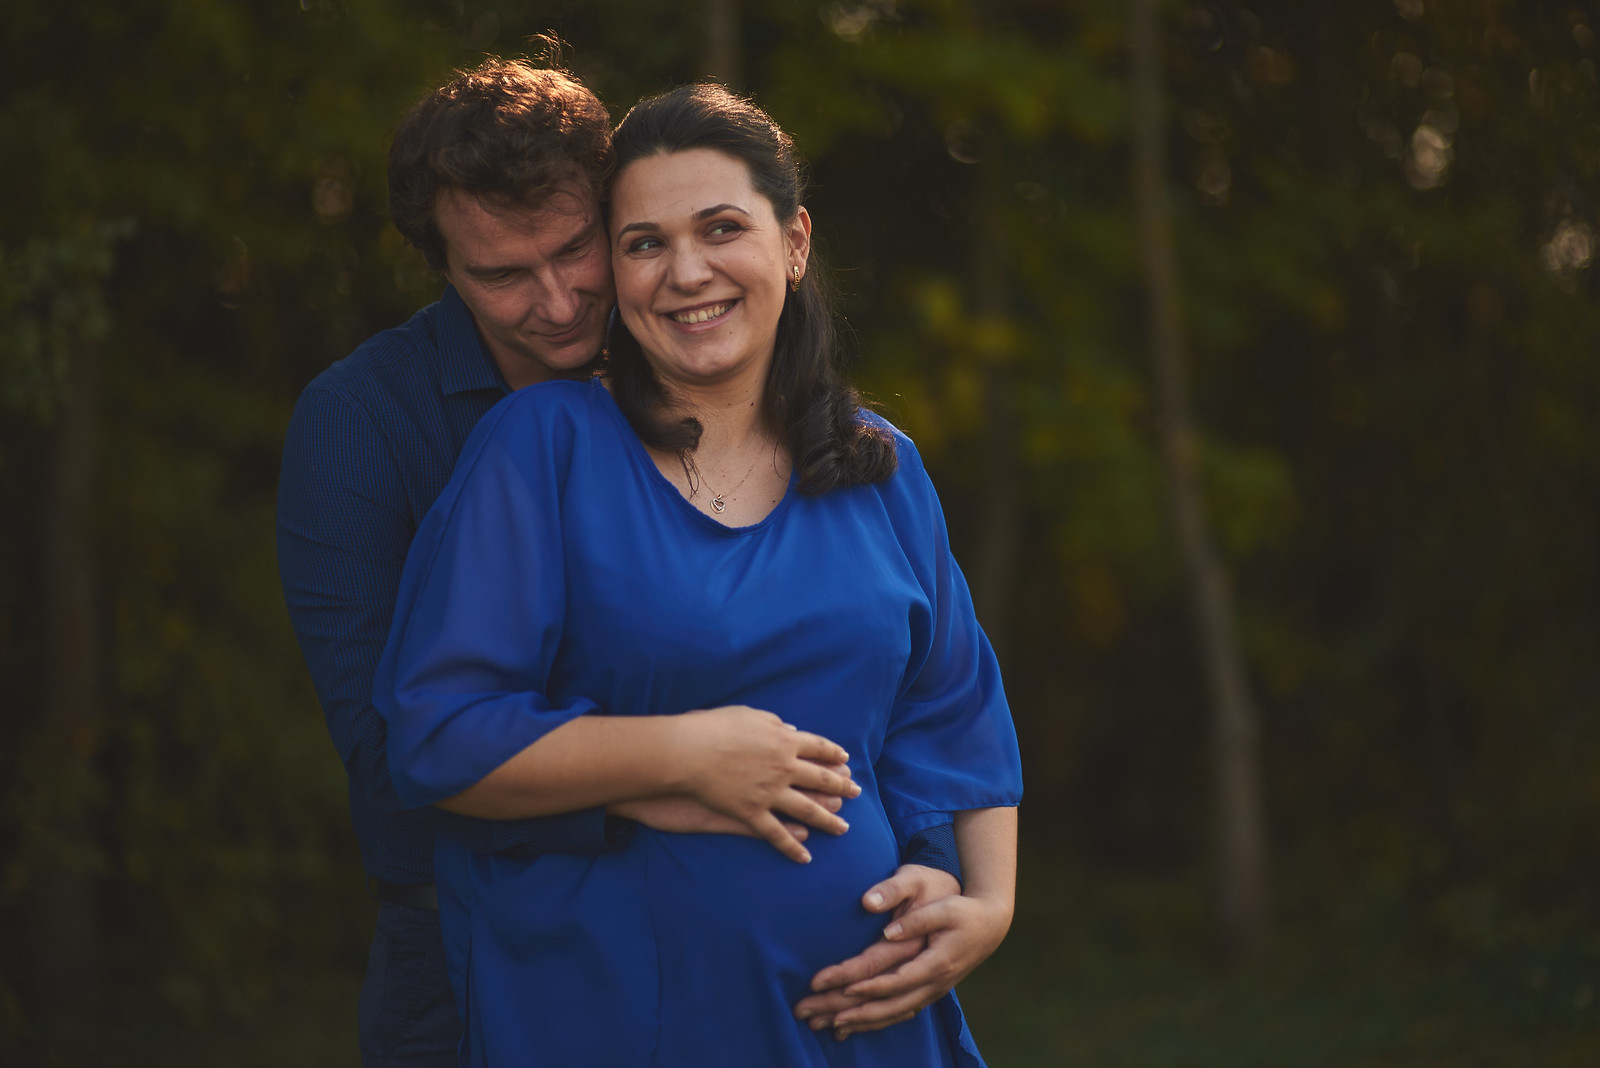 Maternity Photo, Couple, epspictures, Endless Purple Skies, Bucharest Photography